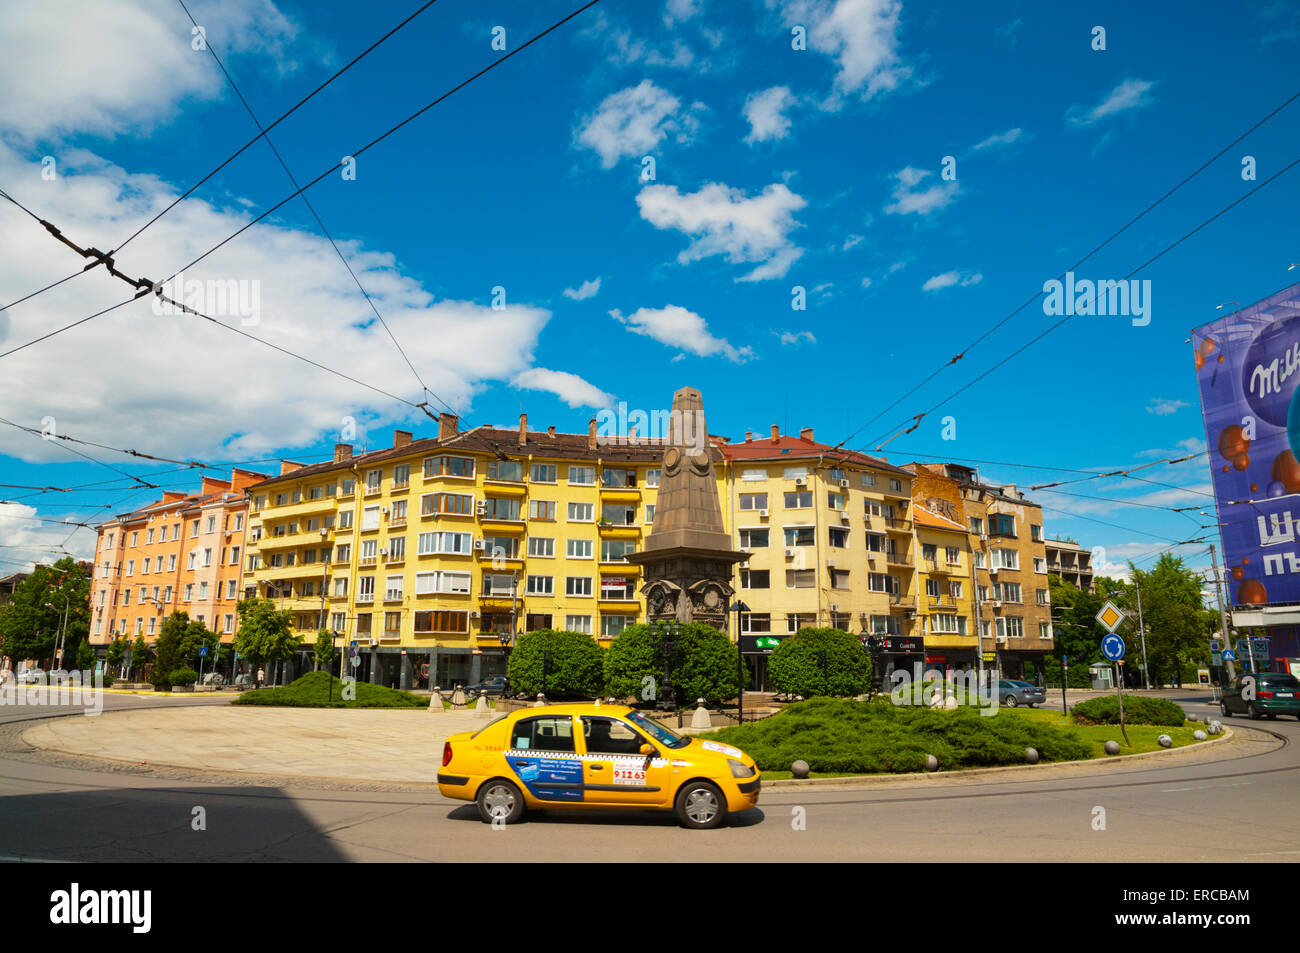 Taxi, at roundabout with monument to Vasil Levski, central Sofia, Bulgaria, Europe - Stock Image